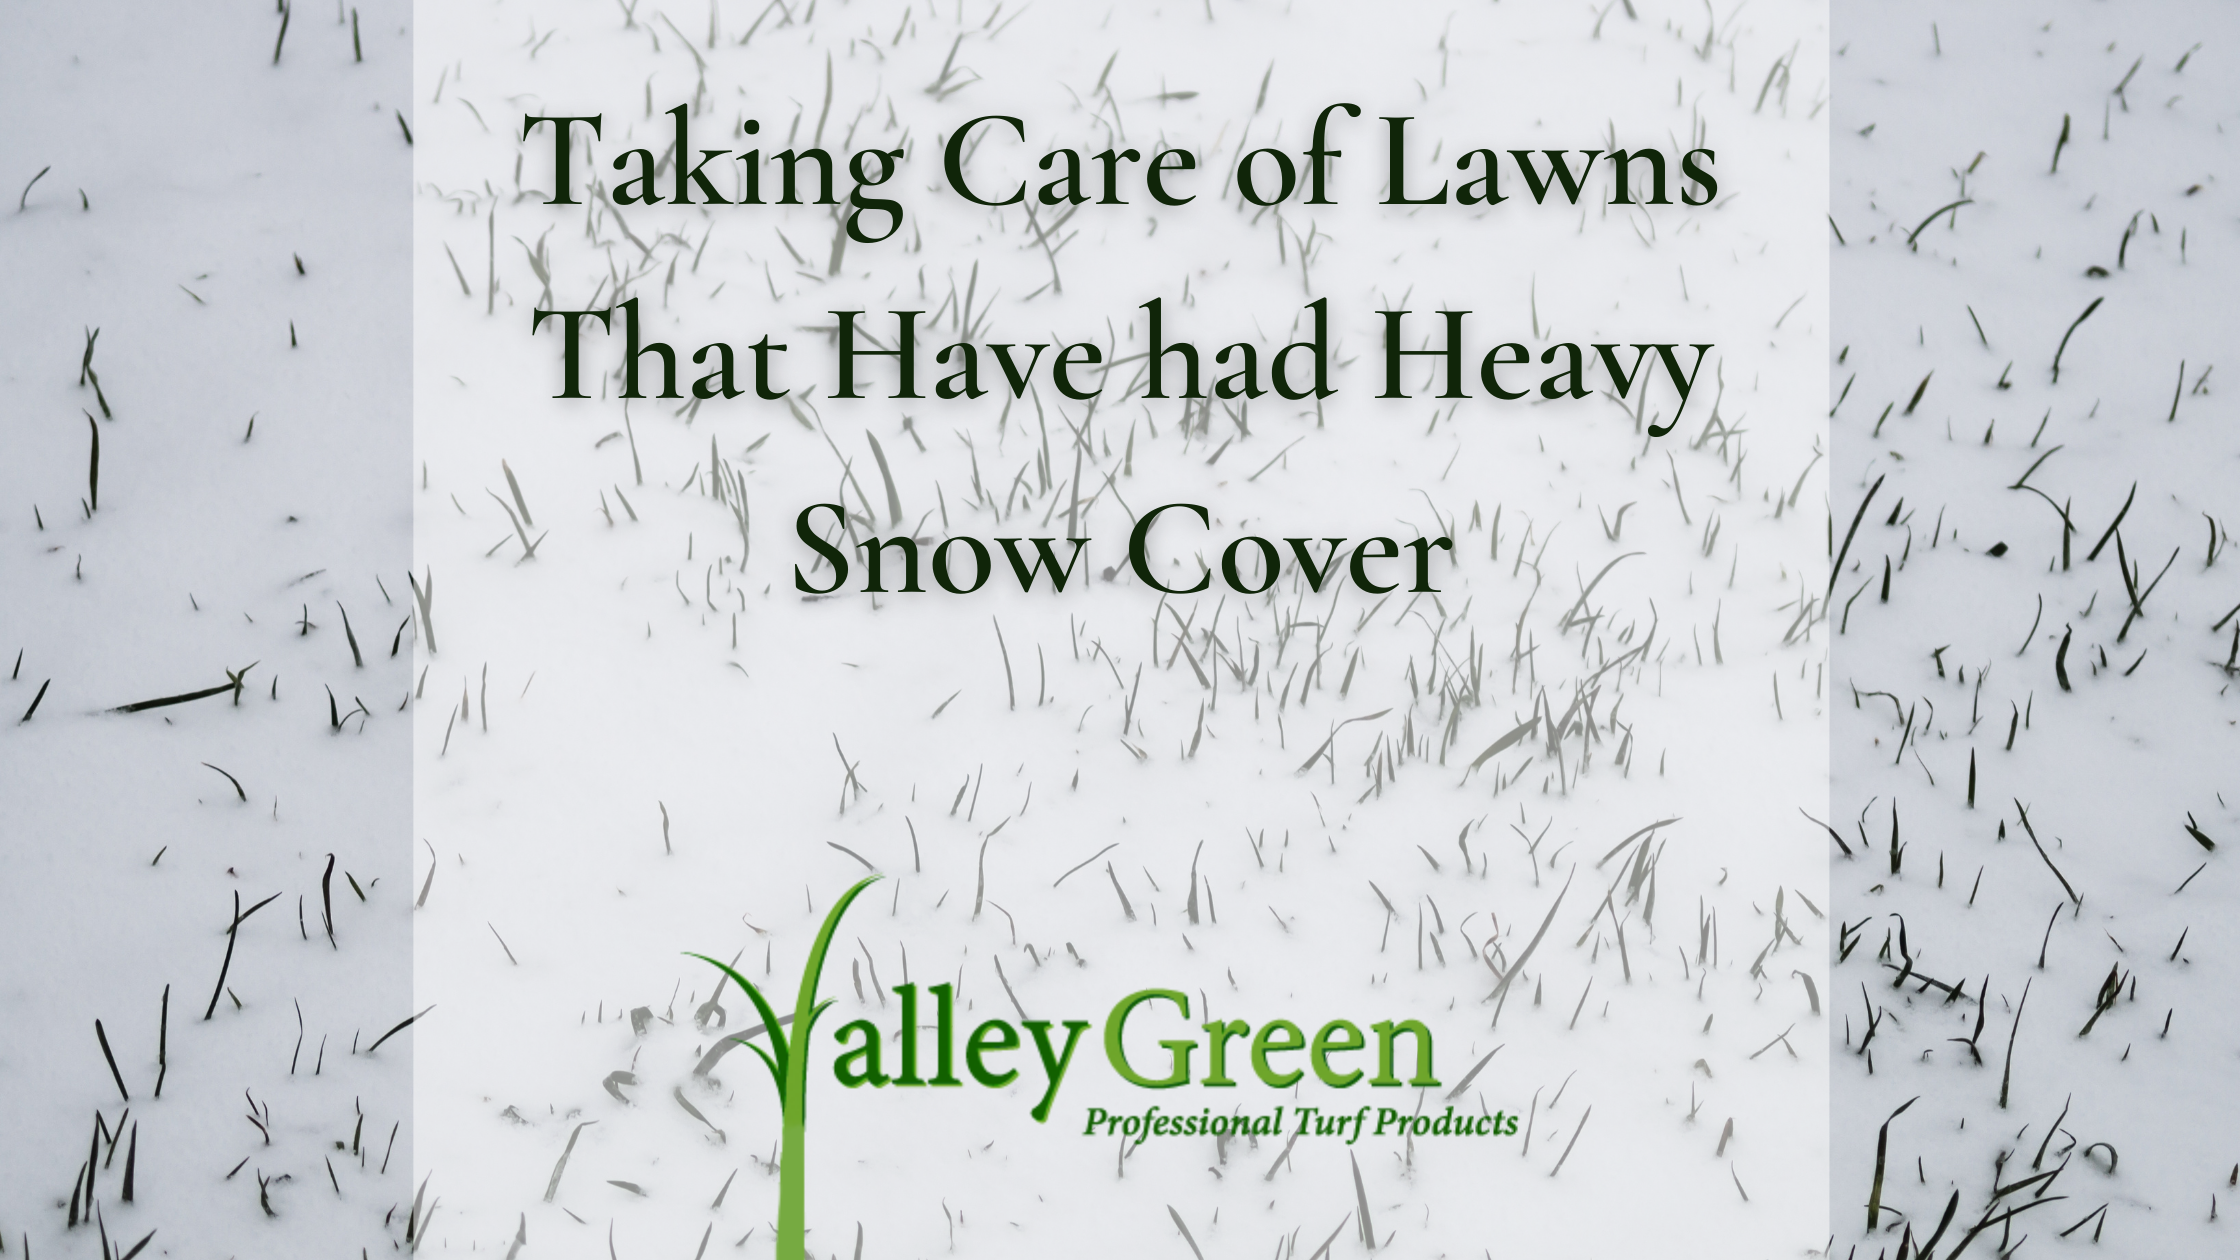 Taking Care of Lawns That Have had Heavy Snow Cover